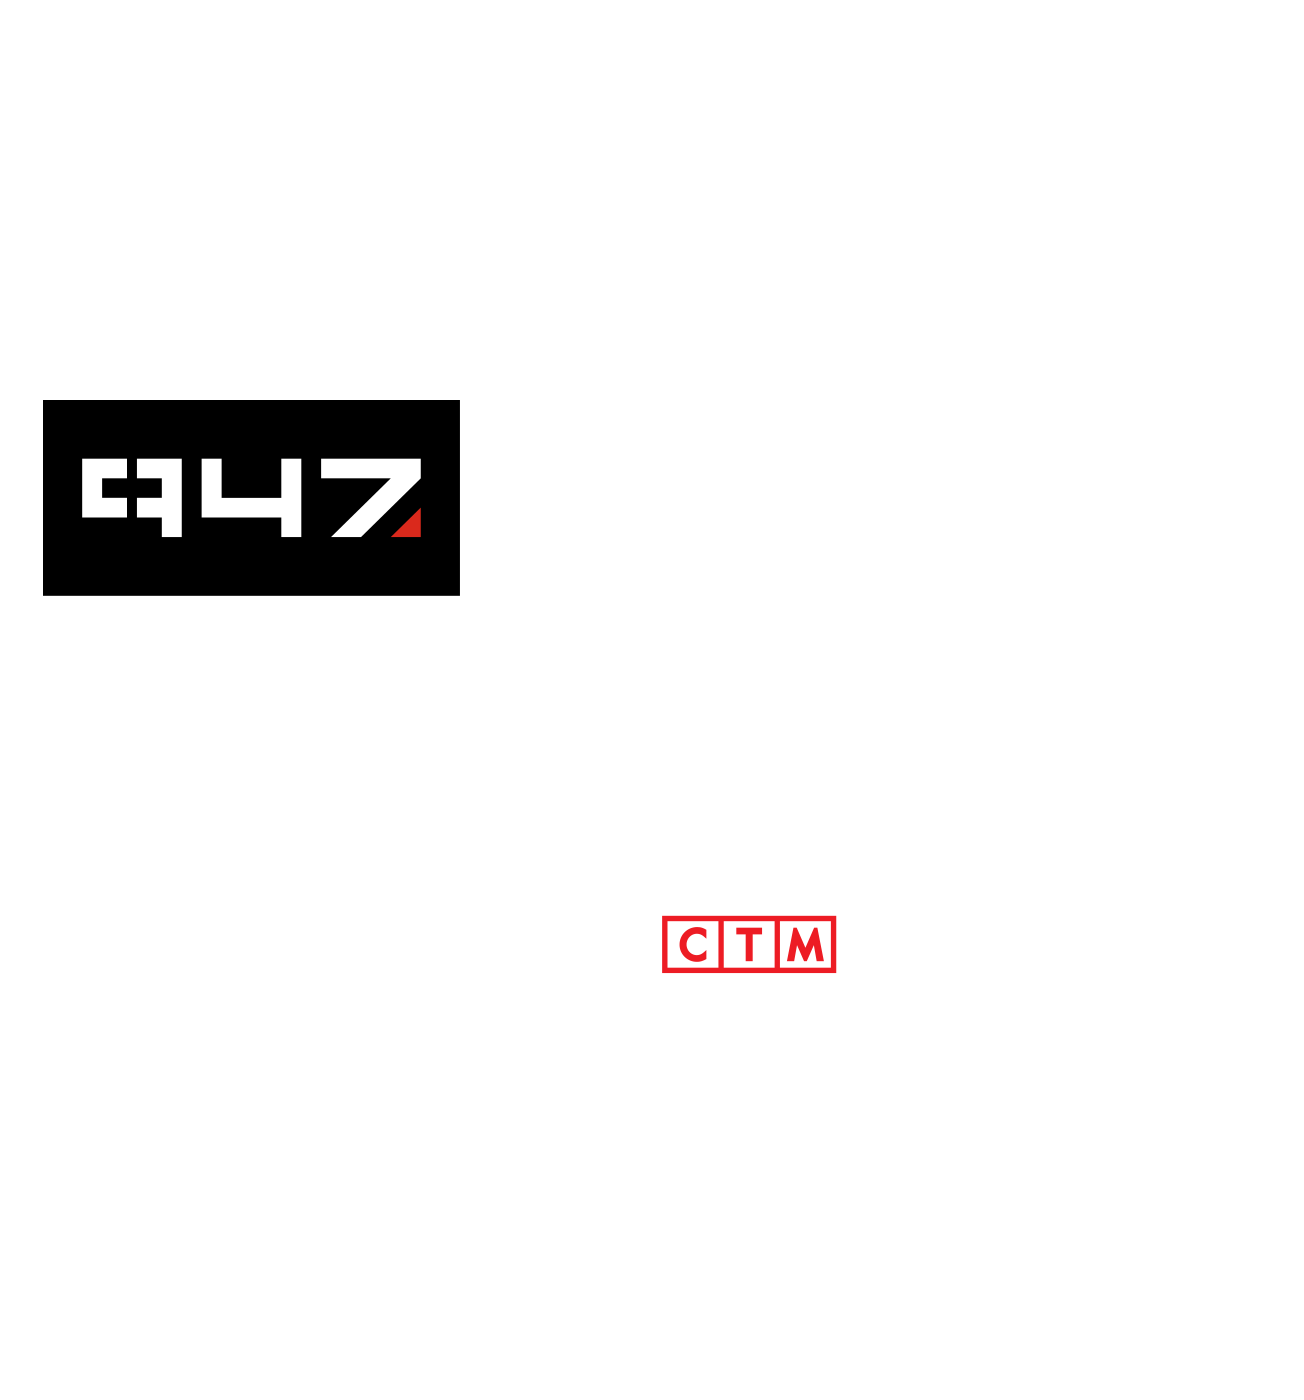 The 947 Top 40 Logo